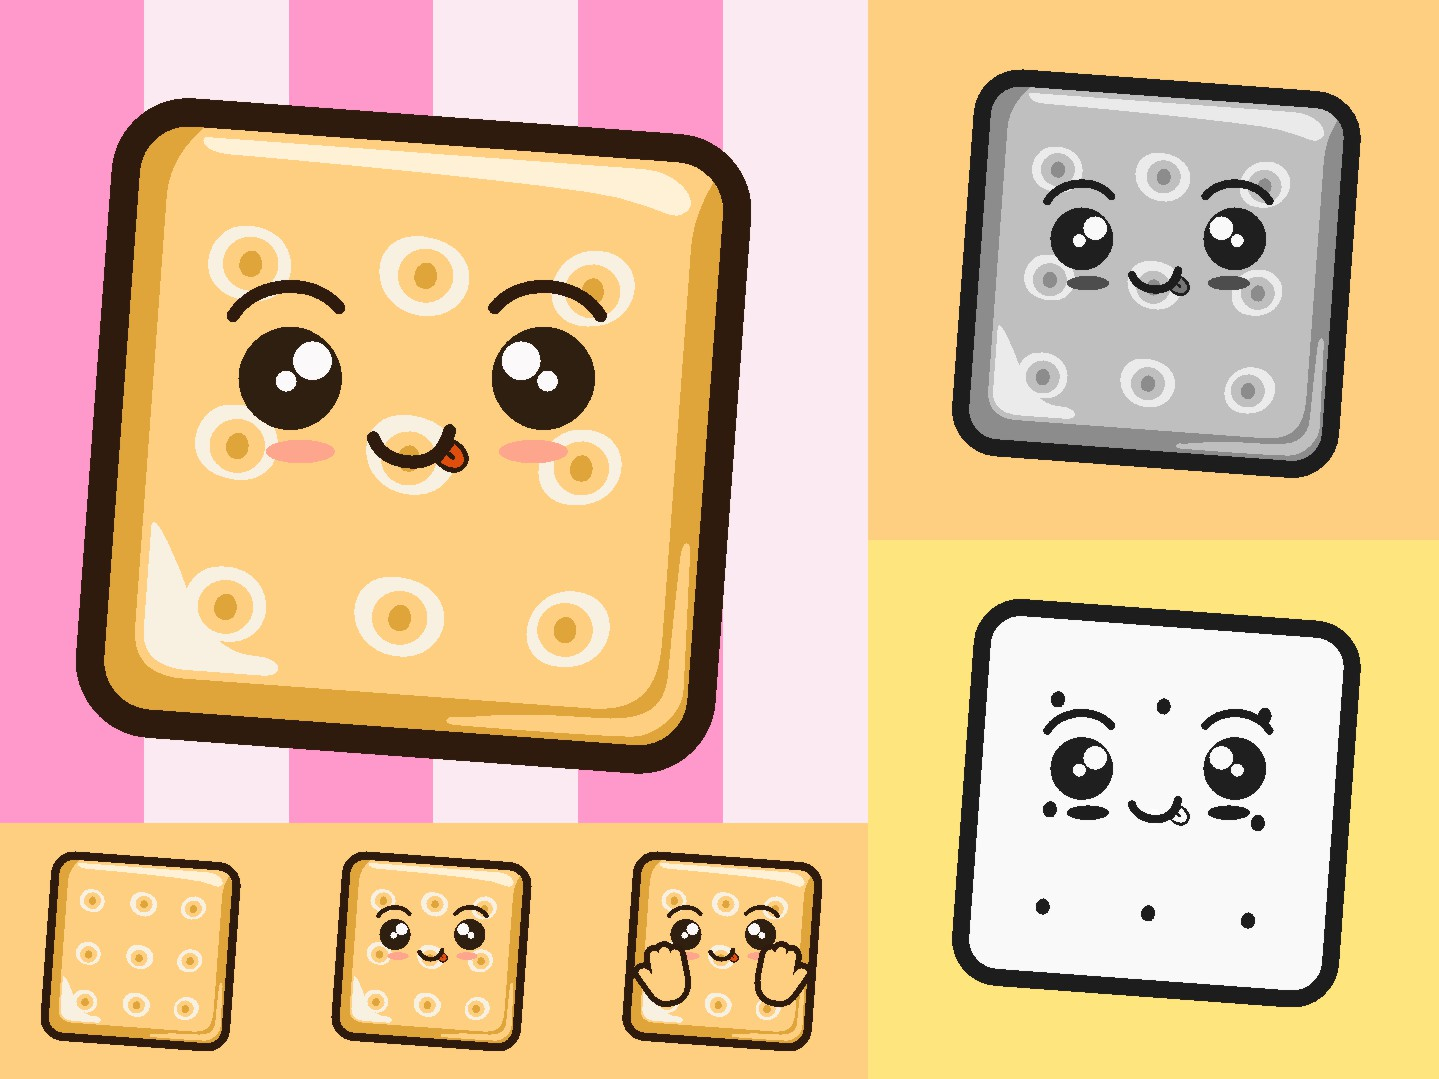 biscuit vector illustration icon graphic by novieart 99 creative fabrica creative fabrica